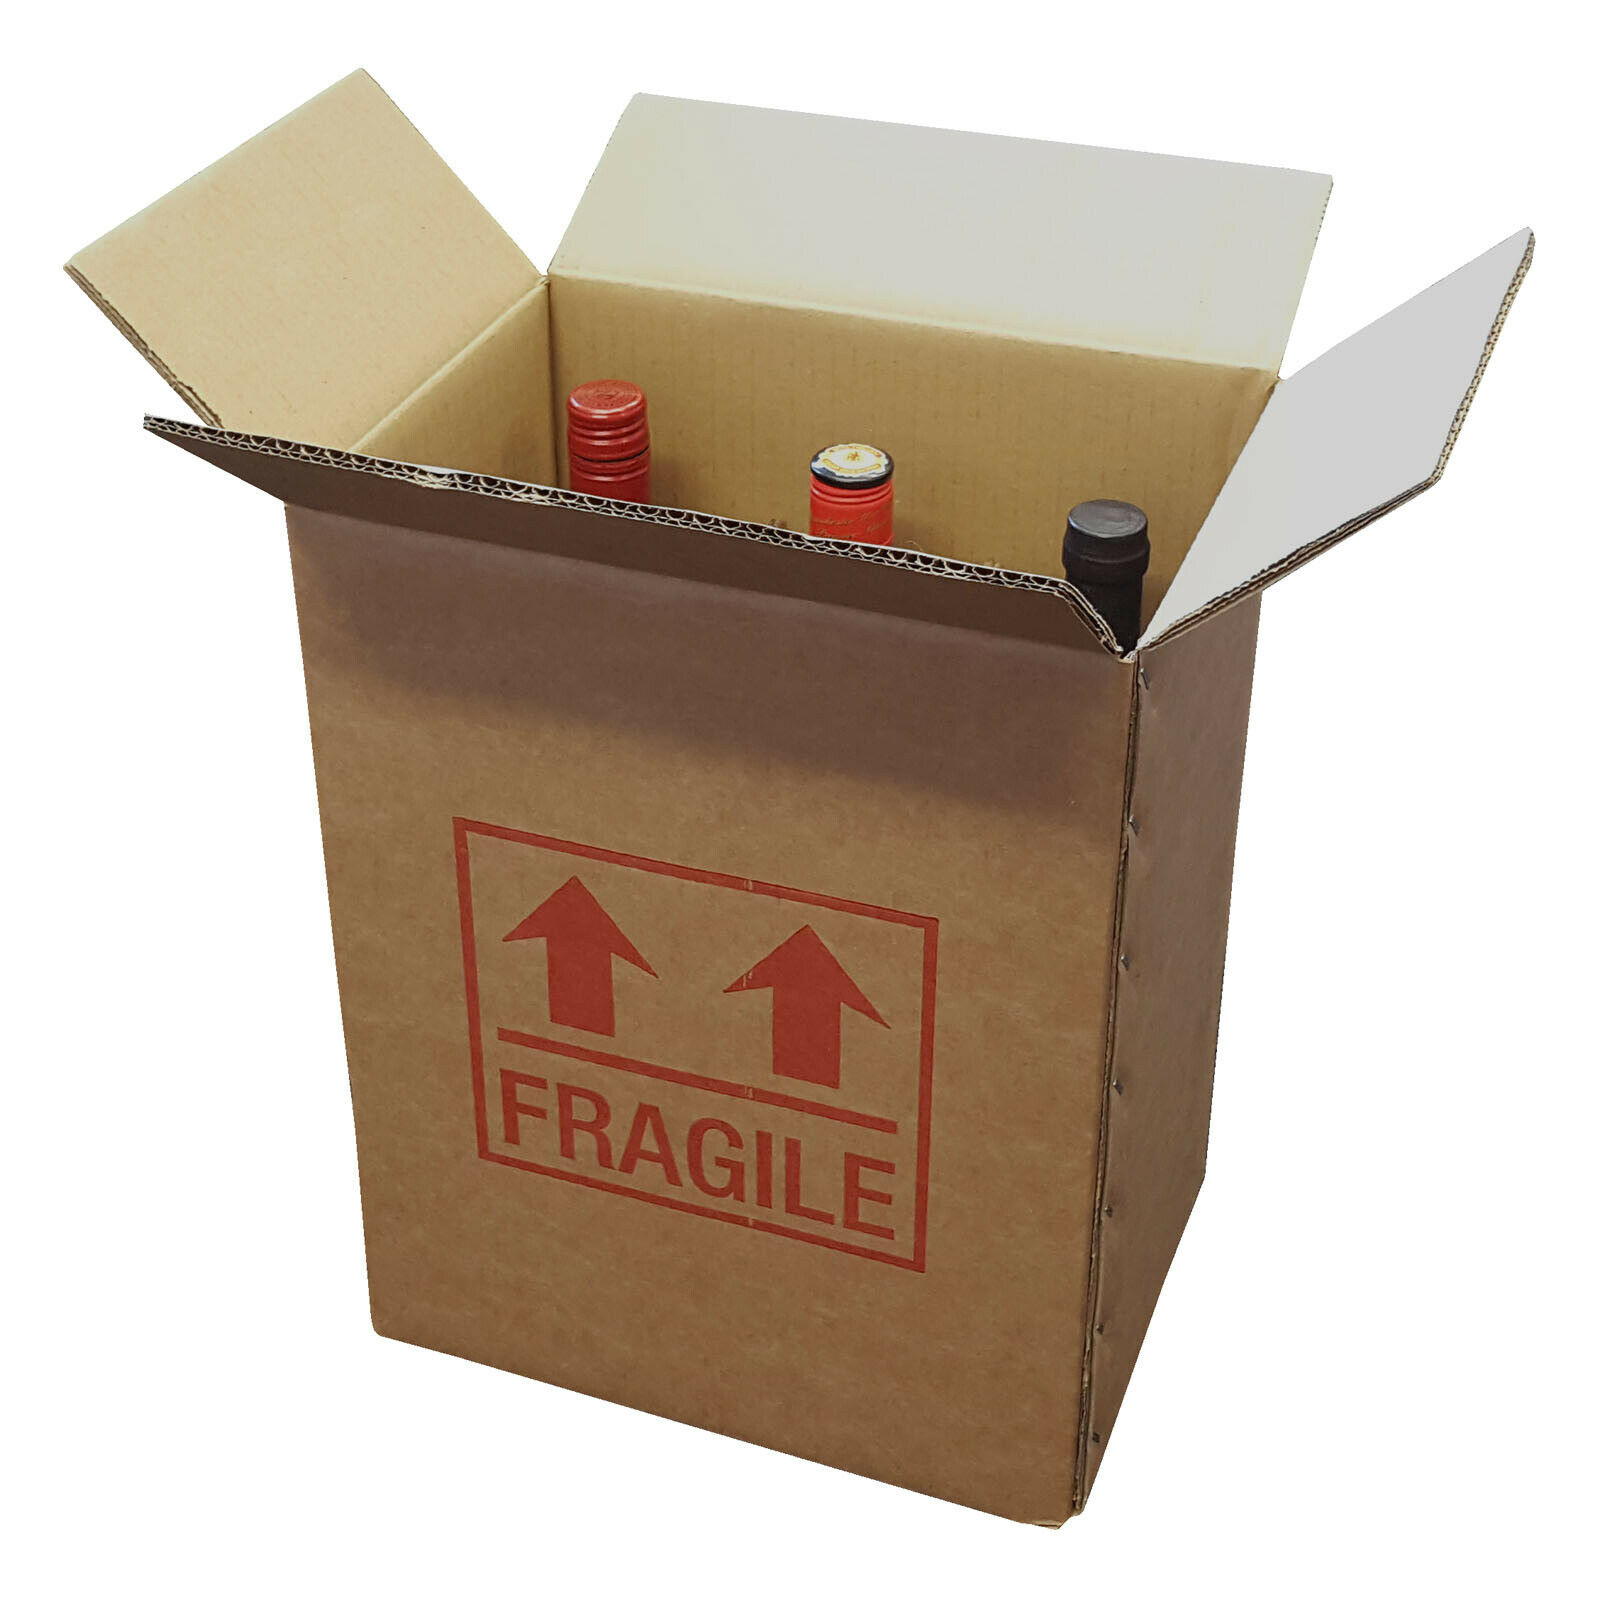 15 Strong Cardboard 6 Bottle Wine Boxes 275mm x 190mm x 335mm Printed Fragile 163603397027 - 15 Strong Cardboard 6 Bottle Wine Boxes 275mm x 190mm x 335mm Printed Fragile